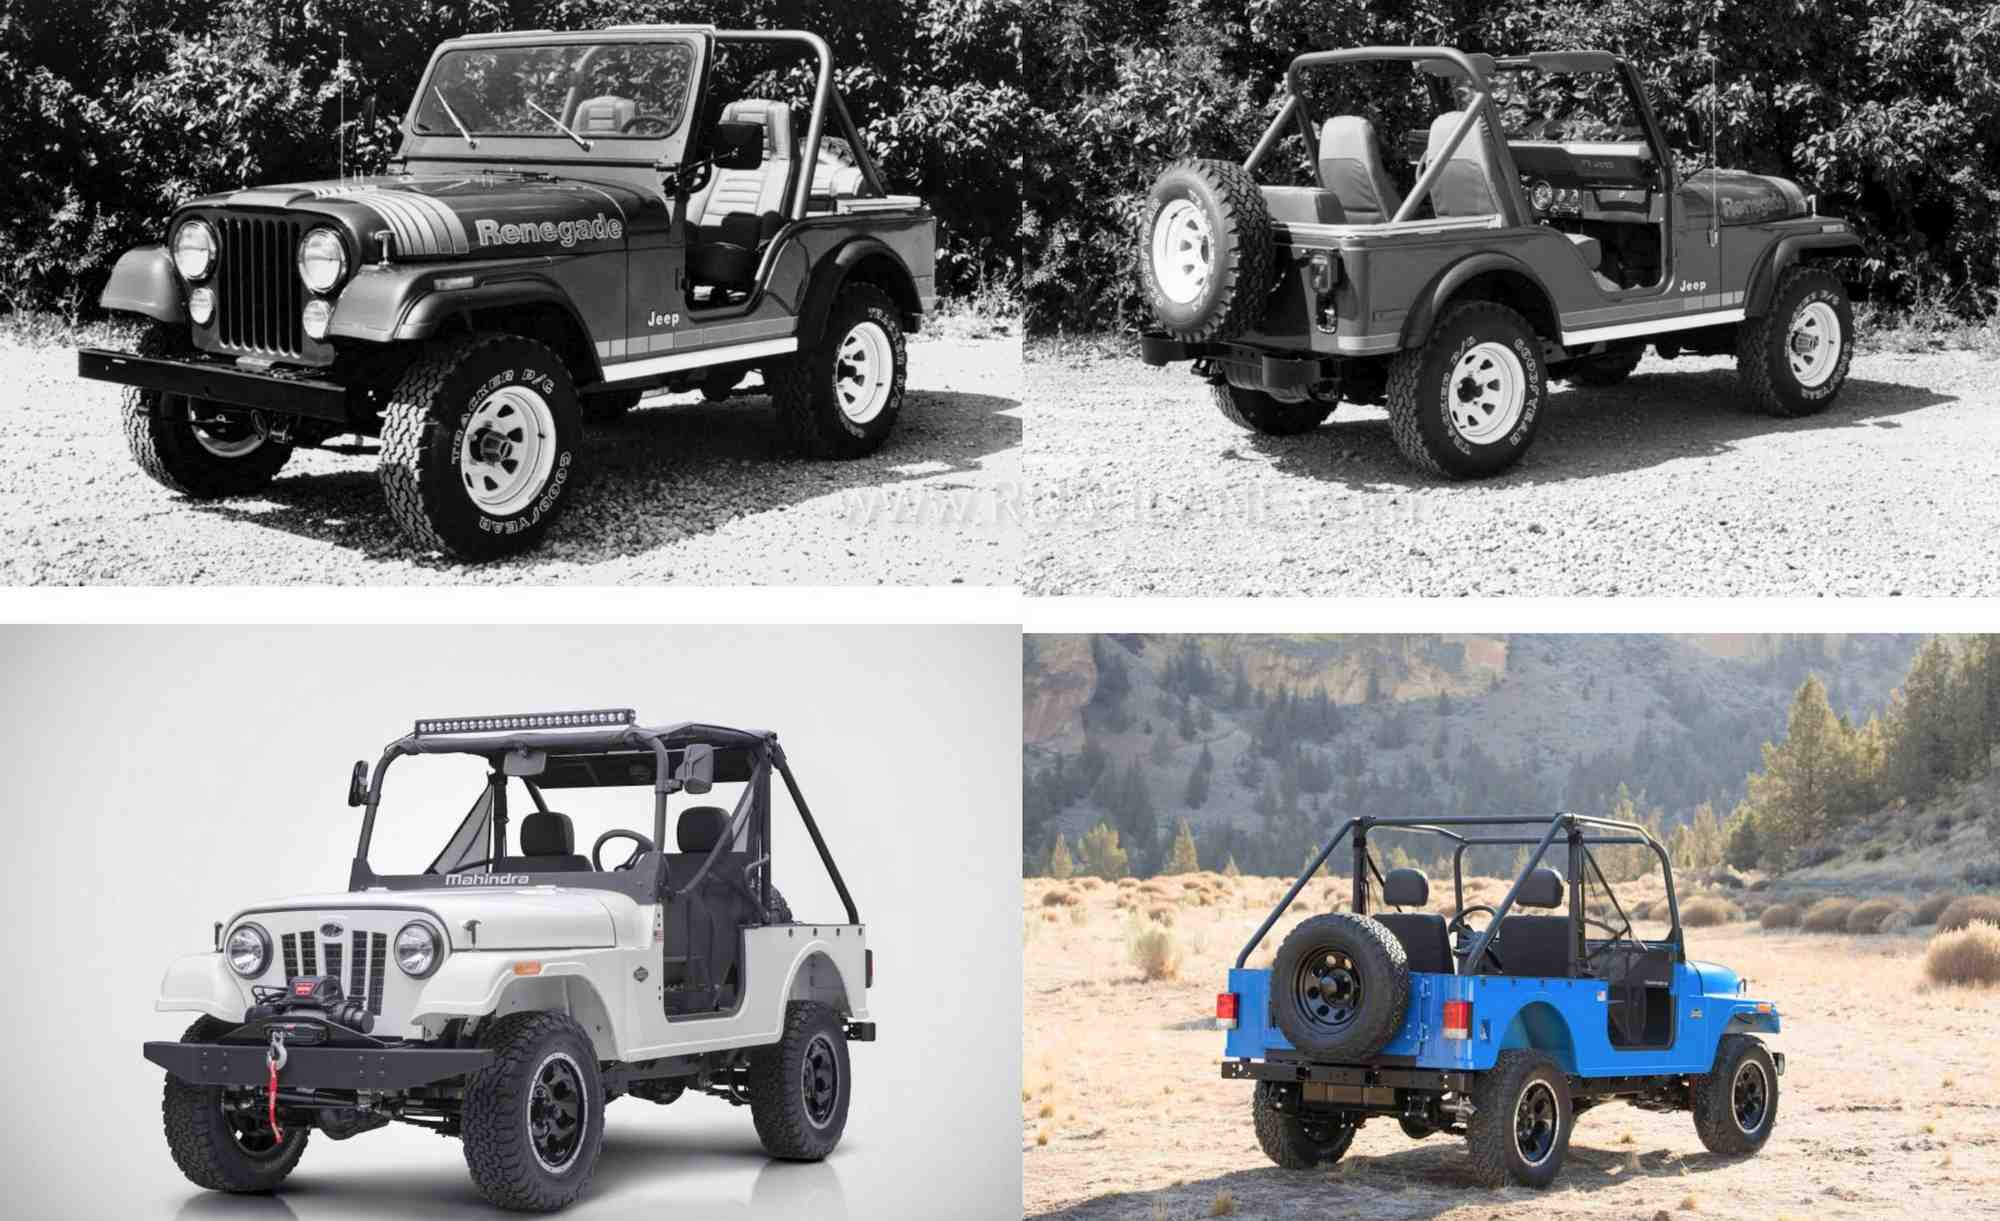 Mahindra Roxor copy of Jeep